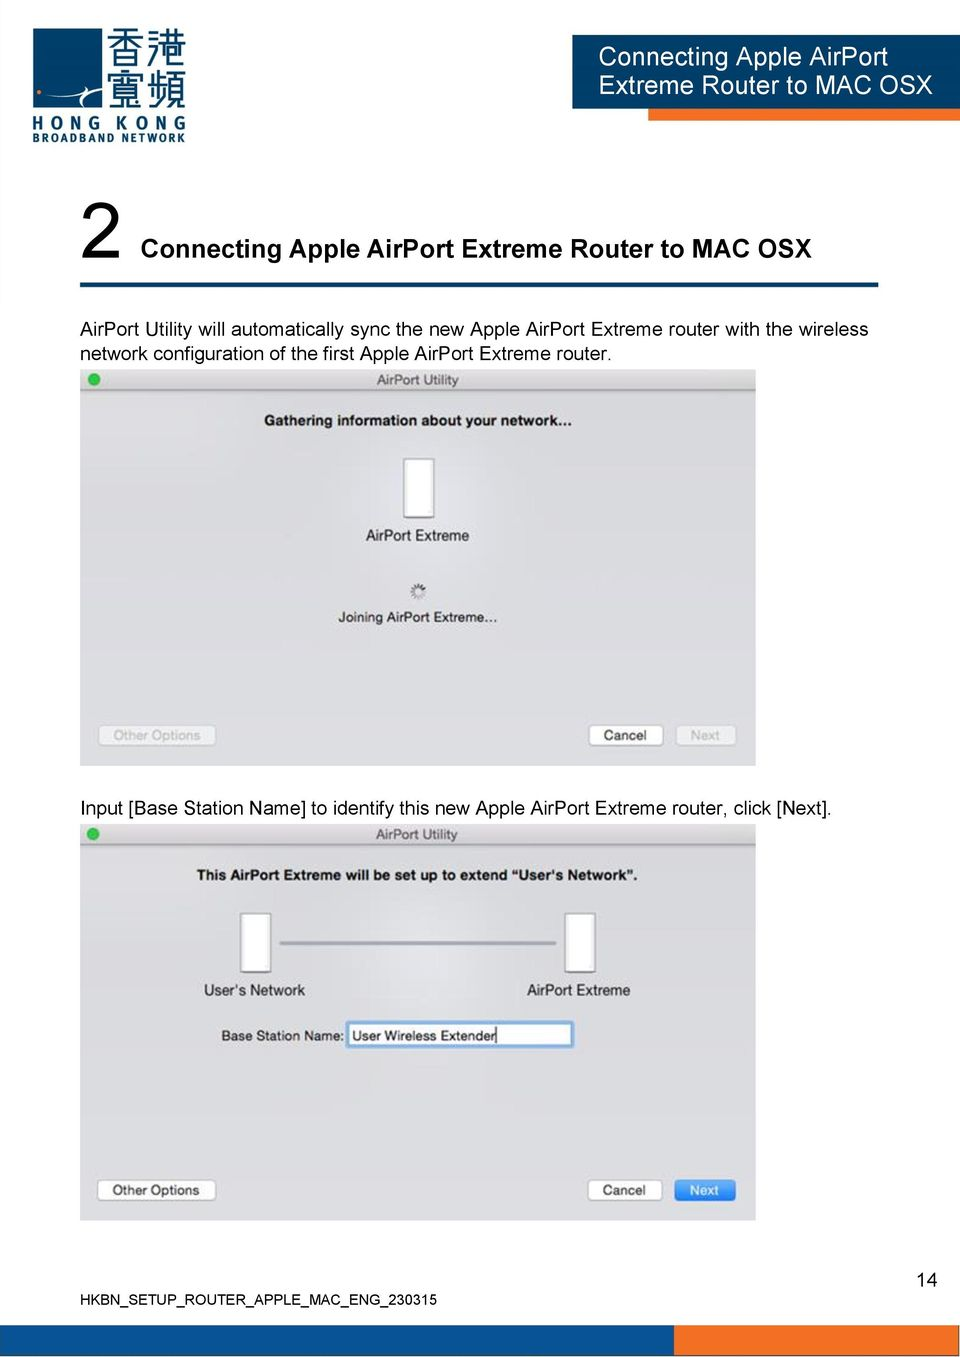 configuration of the first Apple AirPort Extreme router.